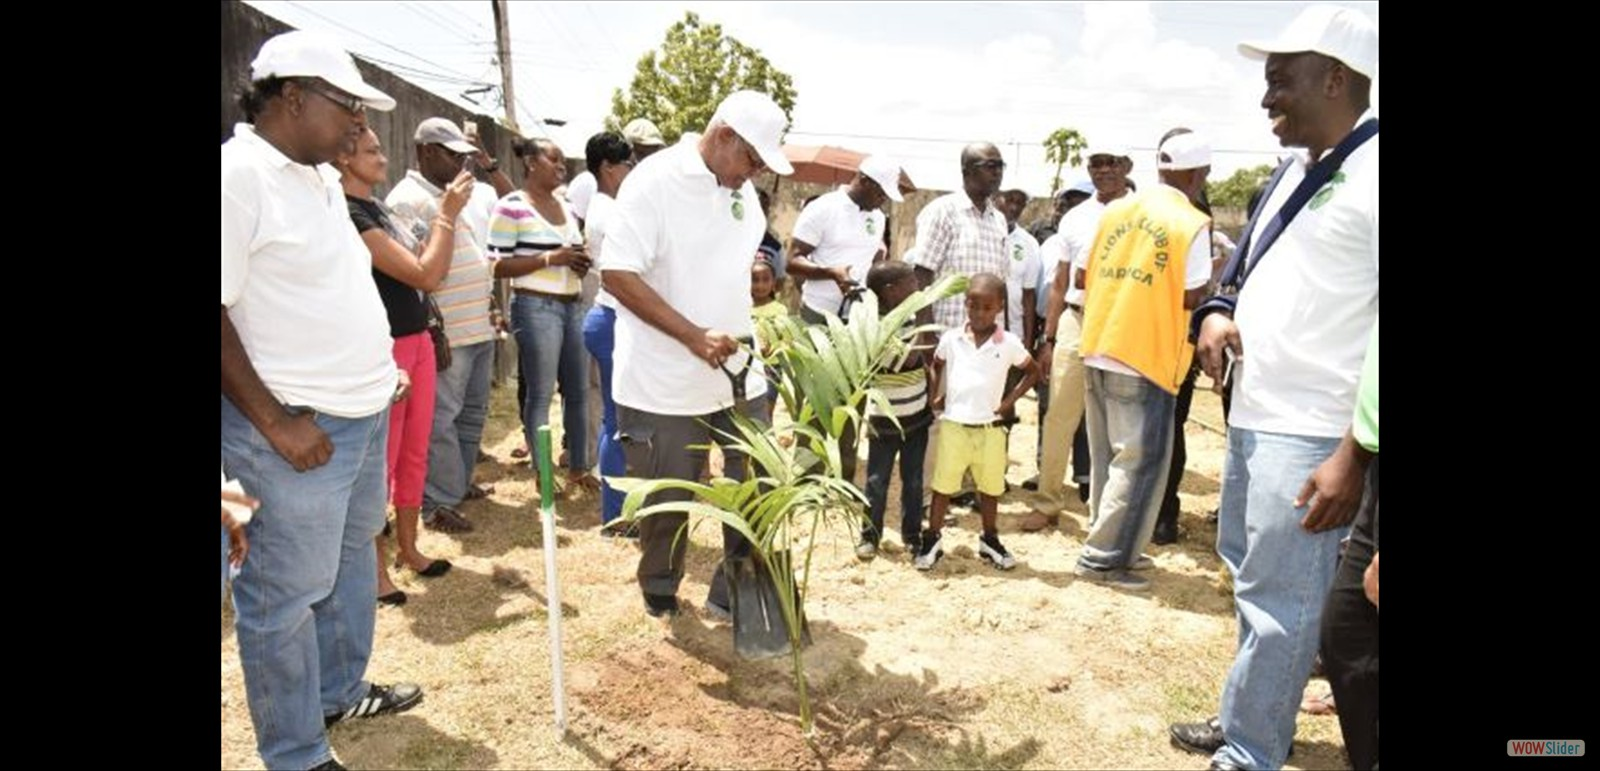 Minister of Agriculture, Noel Holder, planting a tree at the Bartica Community Centre ground, earlier today